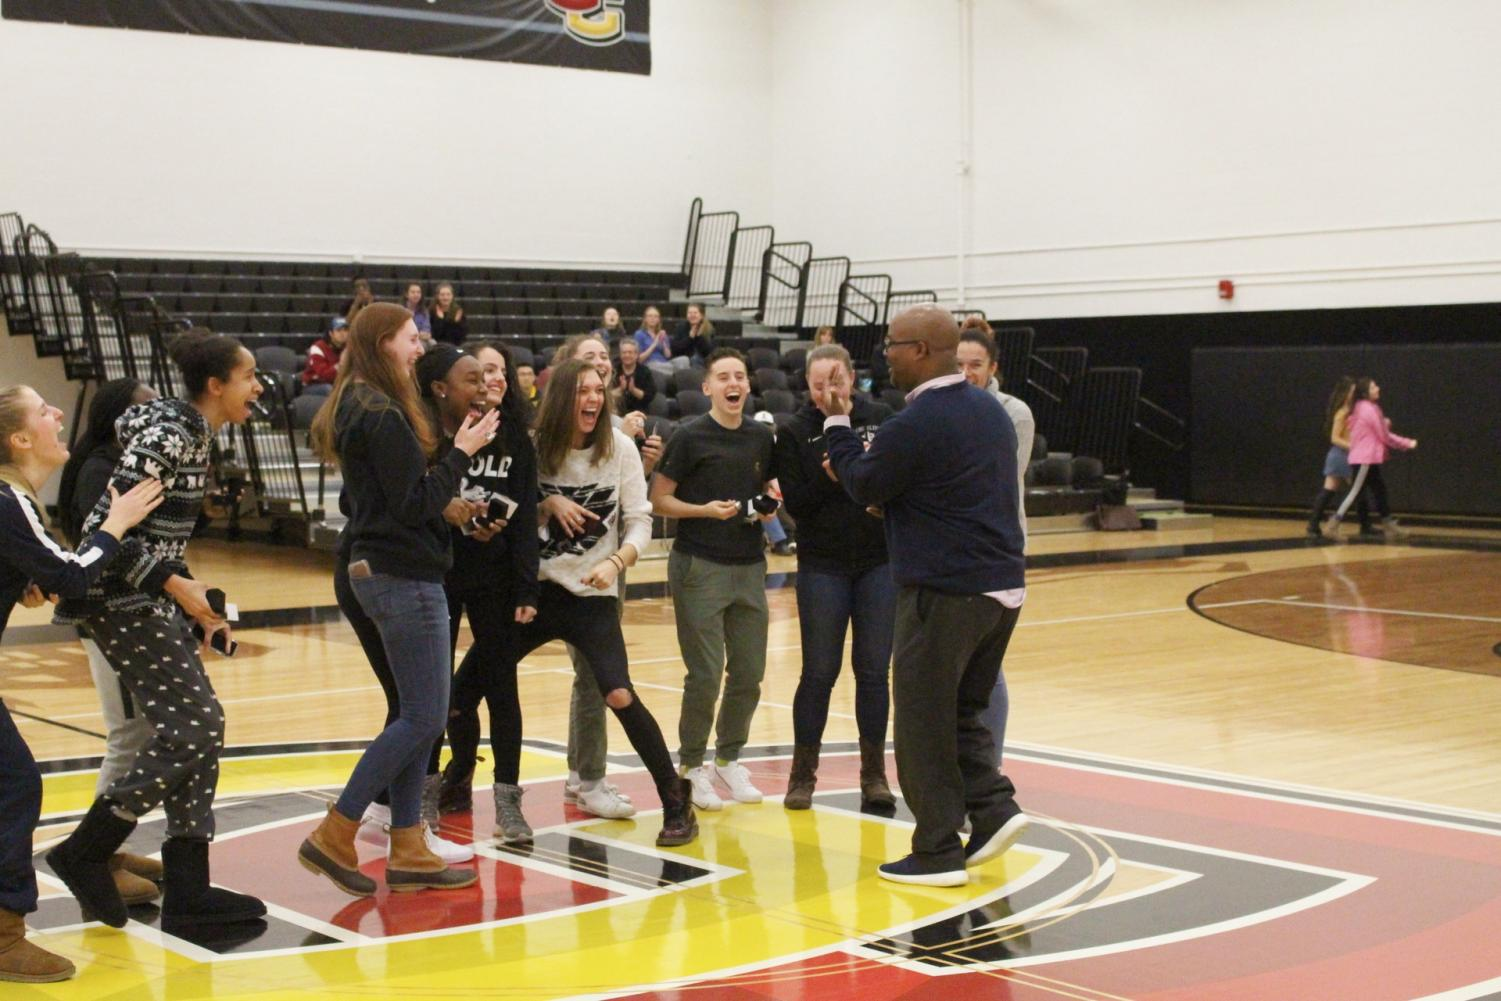 Women's Basketball Head Coach Kerry Jenkins and his players share a laugh at the December ring ceremony celebrating their NCAC championship. Jenkins, who announced his plans to step away from the program a month ago, departs Oberlin as the winningest coach in program history.